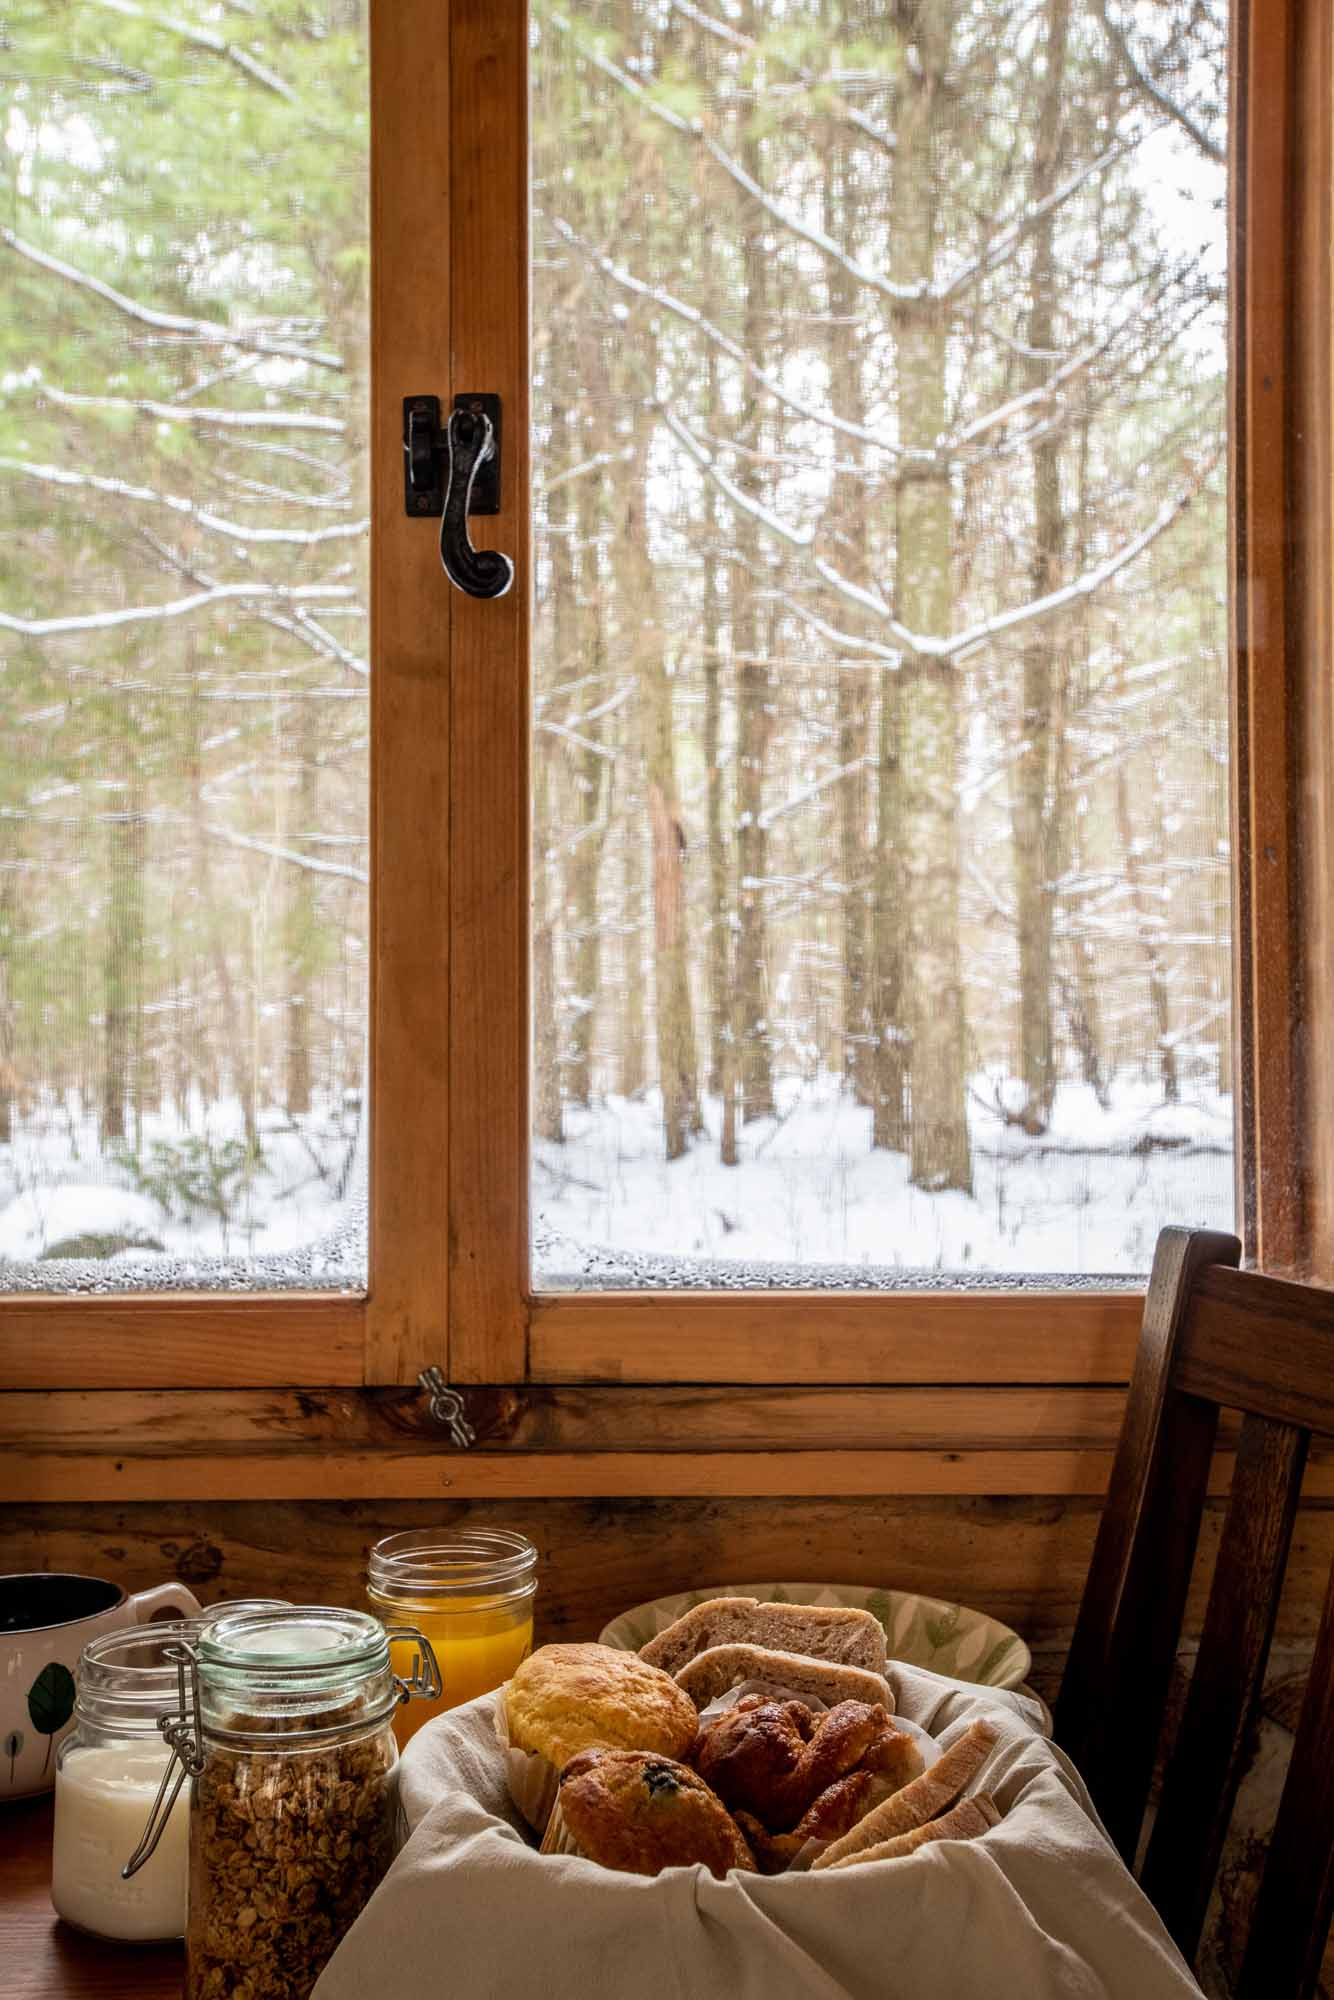 The-Cordwood-Cabin-An-Accessible-Retreat-from-the-21st-Century-breakfast-window-photo-by-Kristin-Schnelten